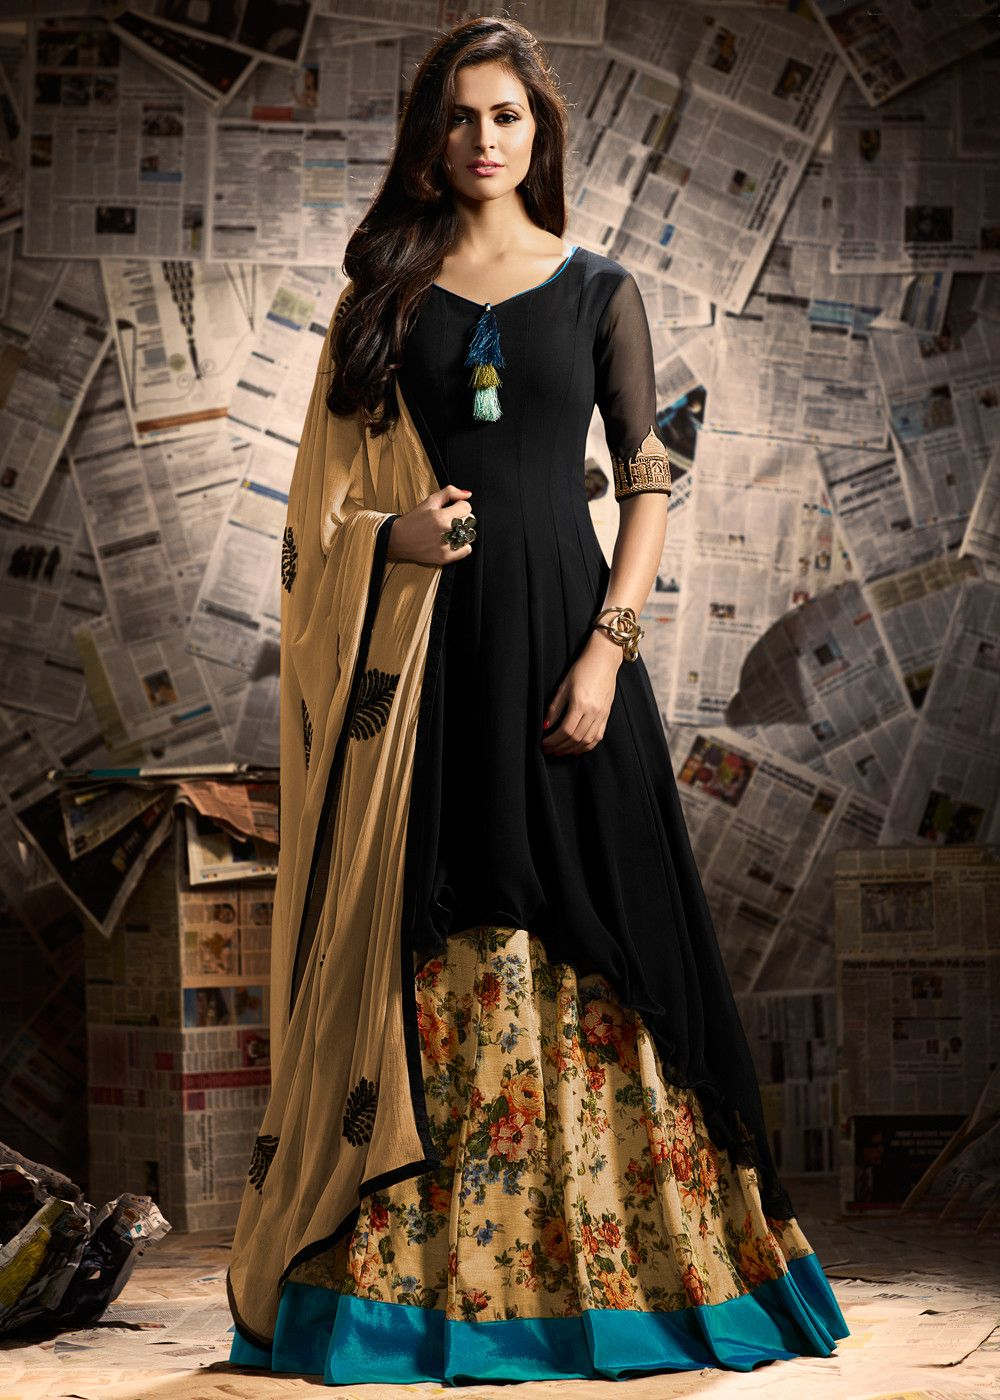 d1fc9a66a398a4 Black #kurti #style asymmetrical georgette #kameez in georgette embellished  with tassels and architectural embroidery.